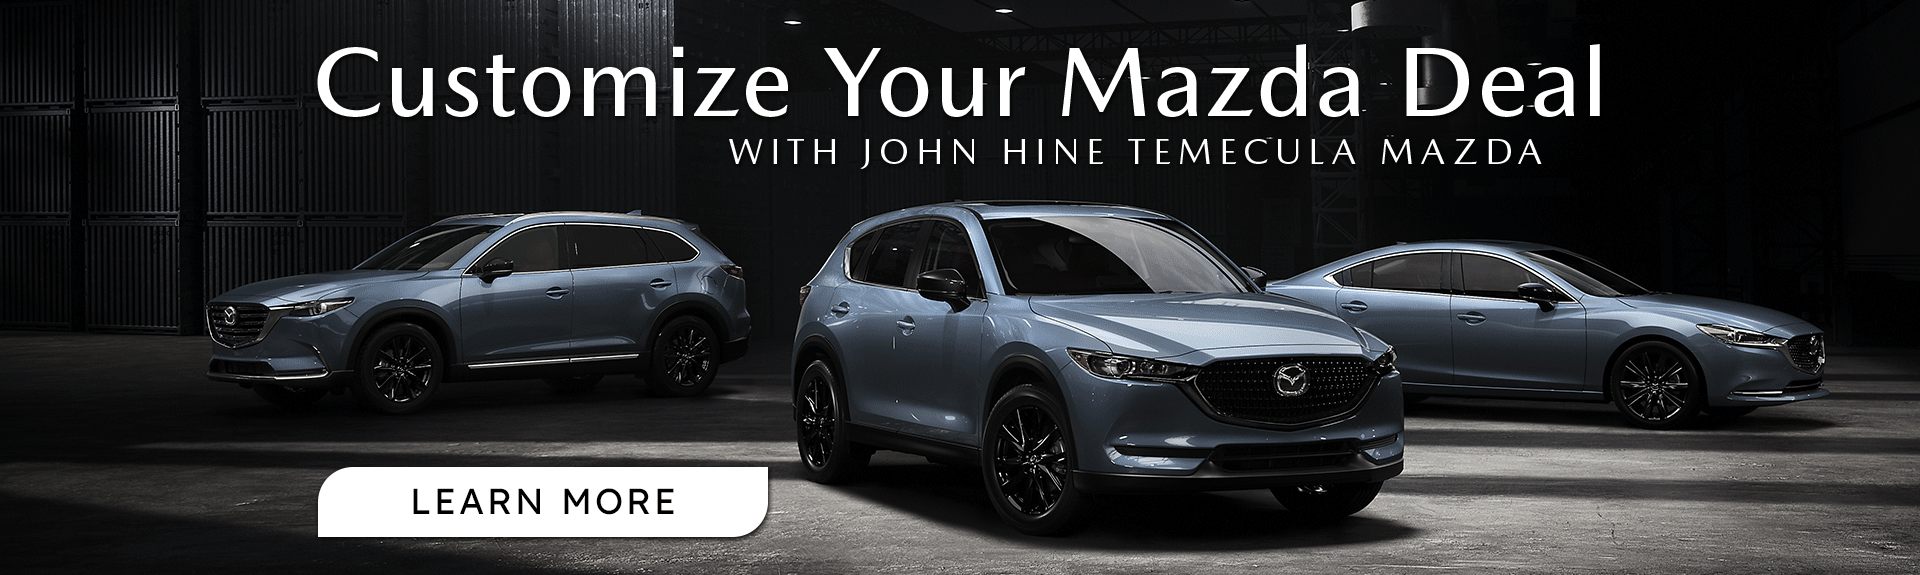 Customize Your Mazda Deal